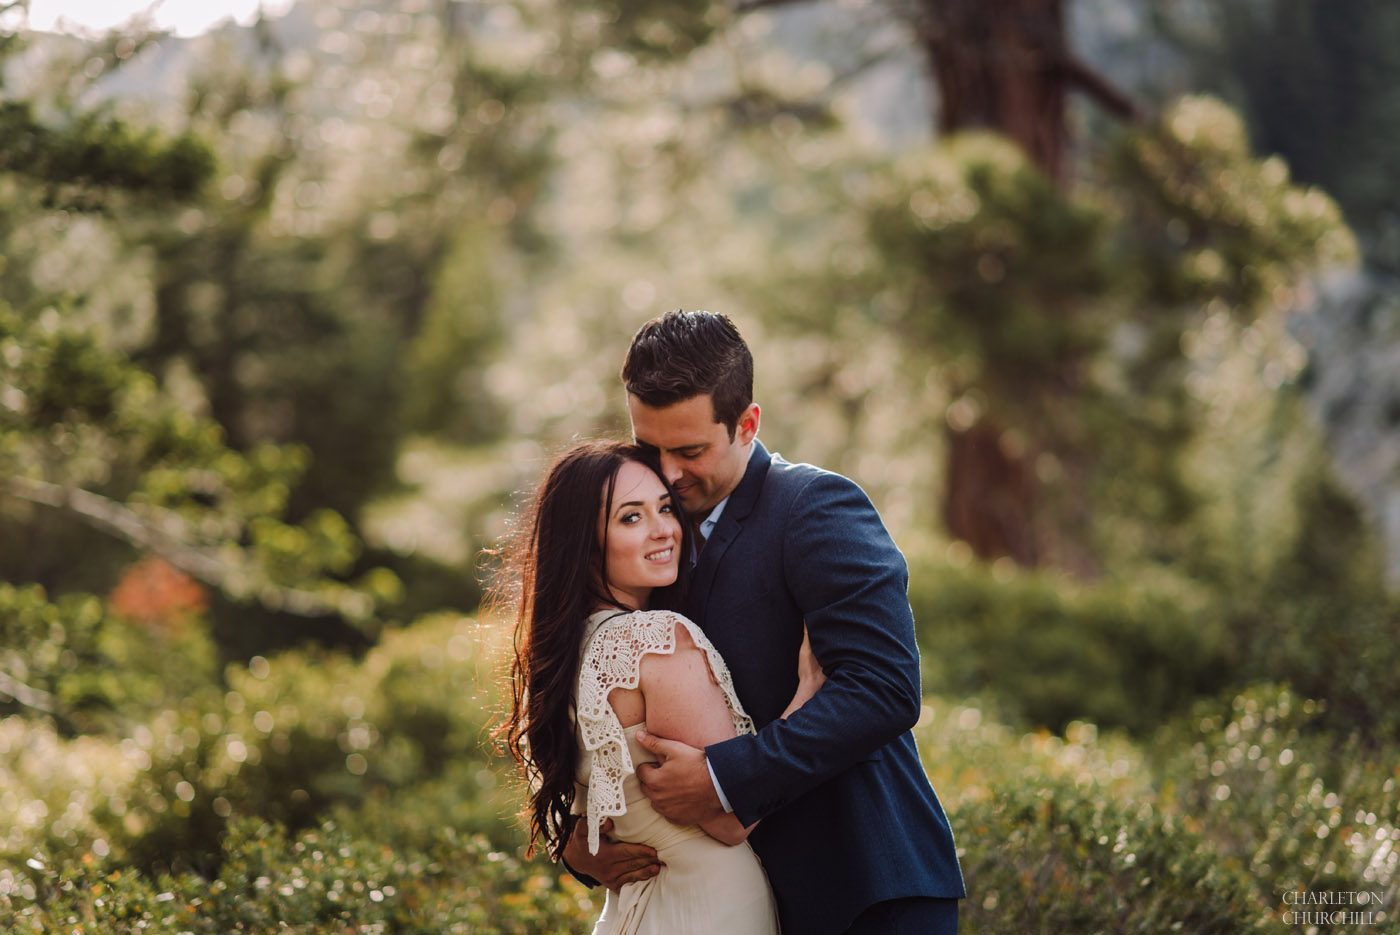 beautiful natural light couples photos in the trees during sunset of Lake Tahoe